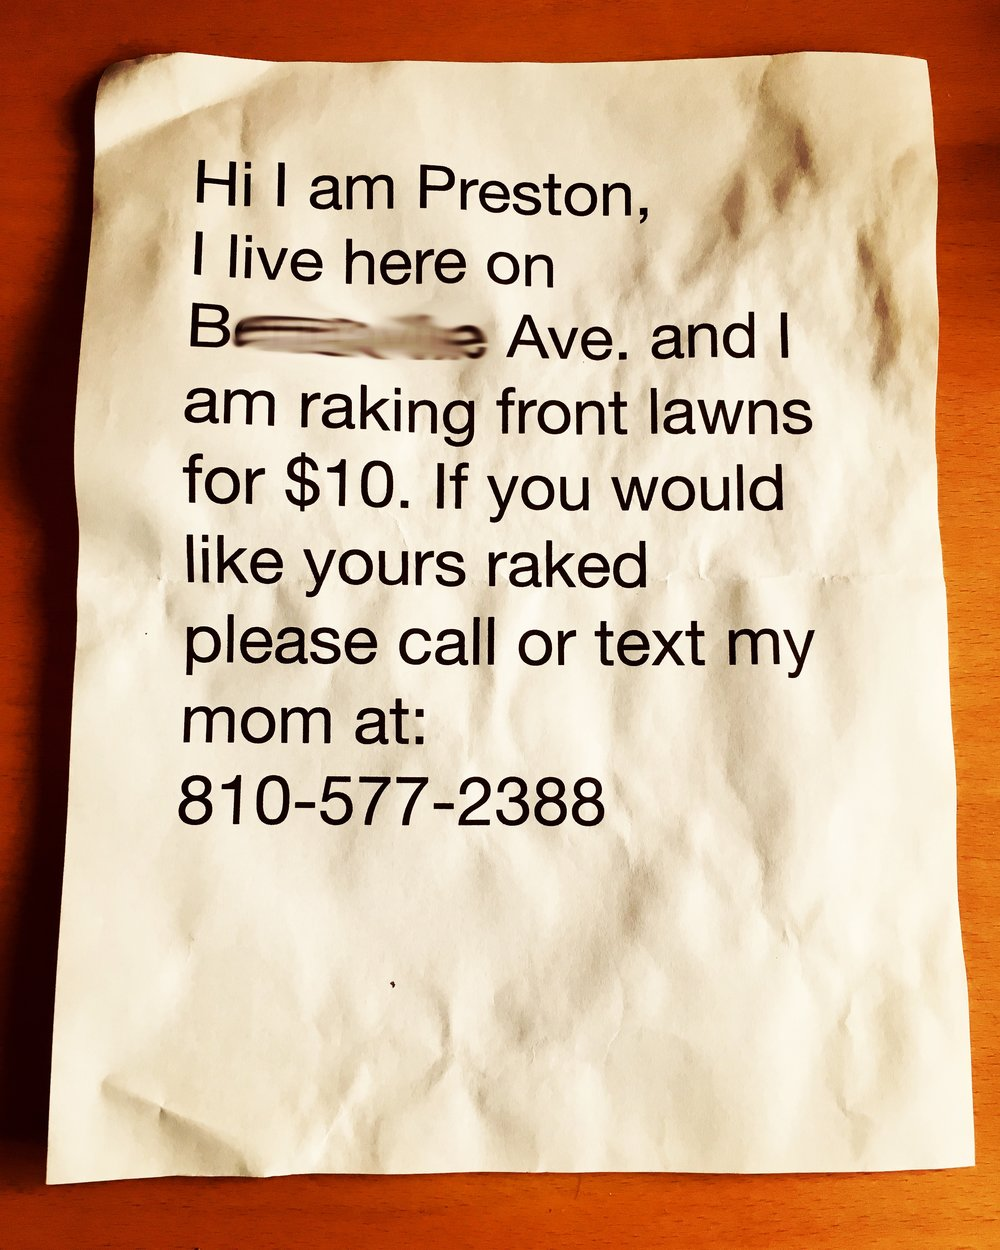 Frankly, I think this is just an elaborate scheme by Preston's mom to get laid. So rife with euphemism.